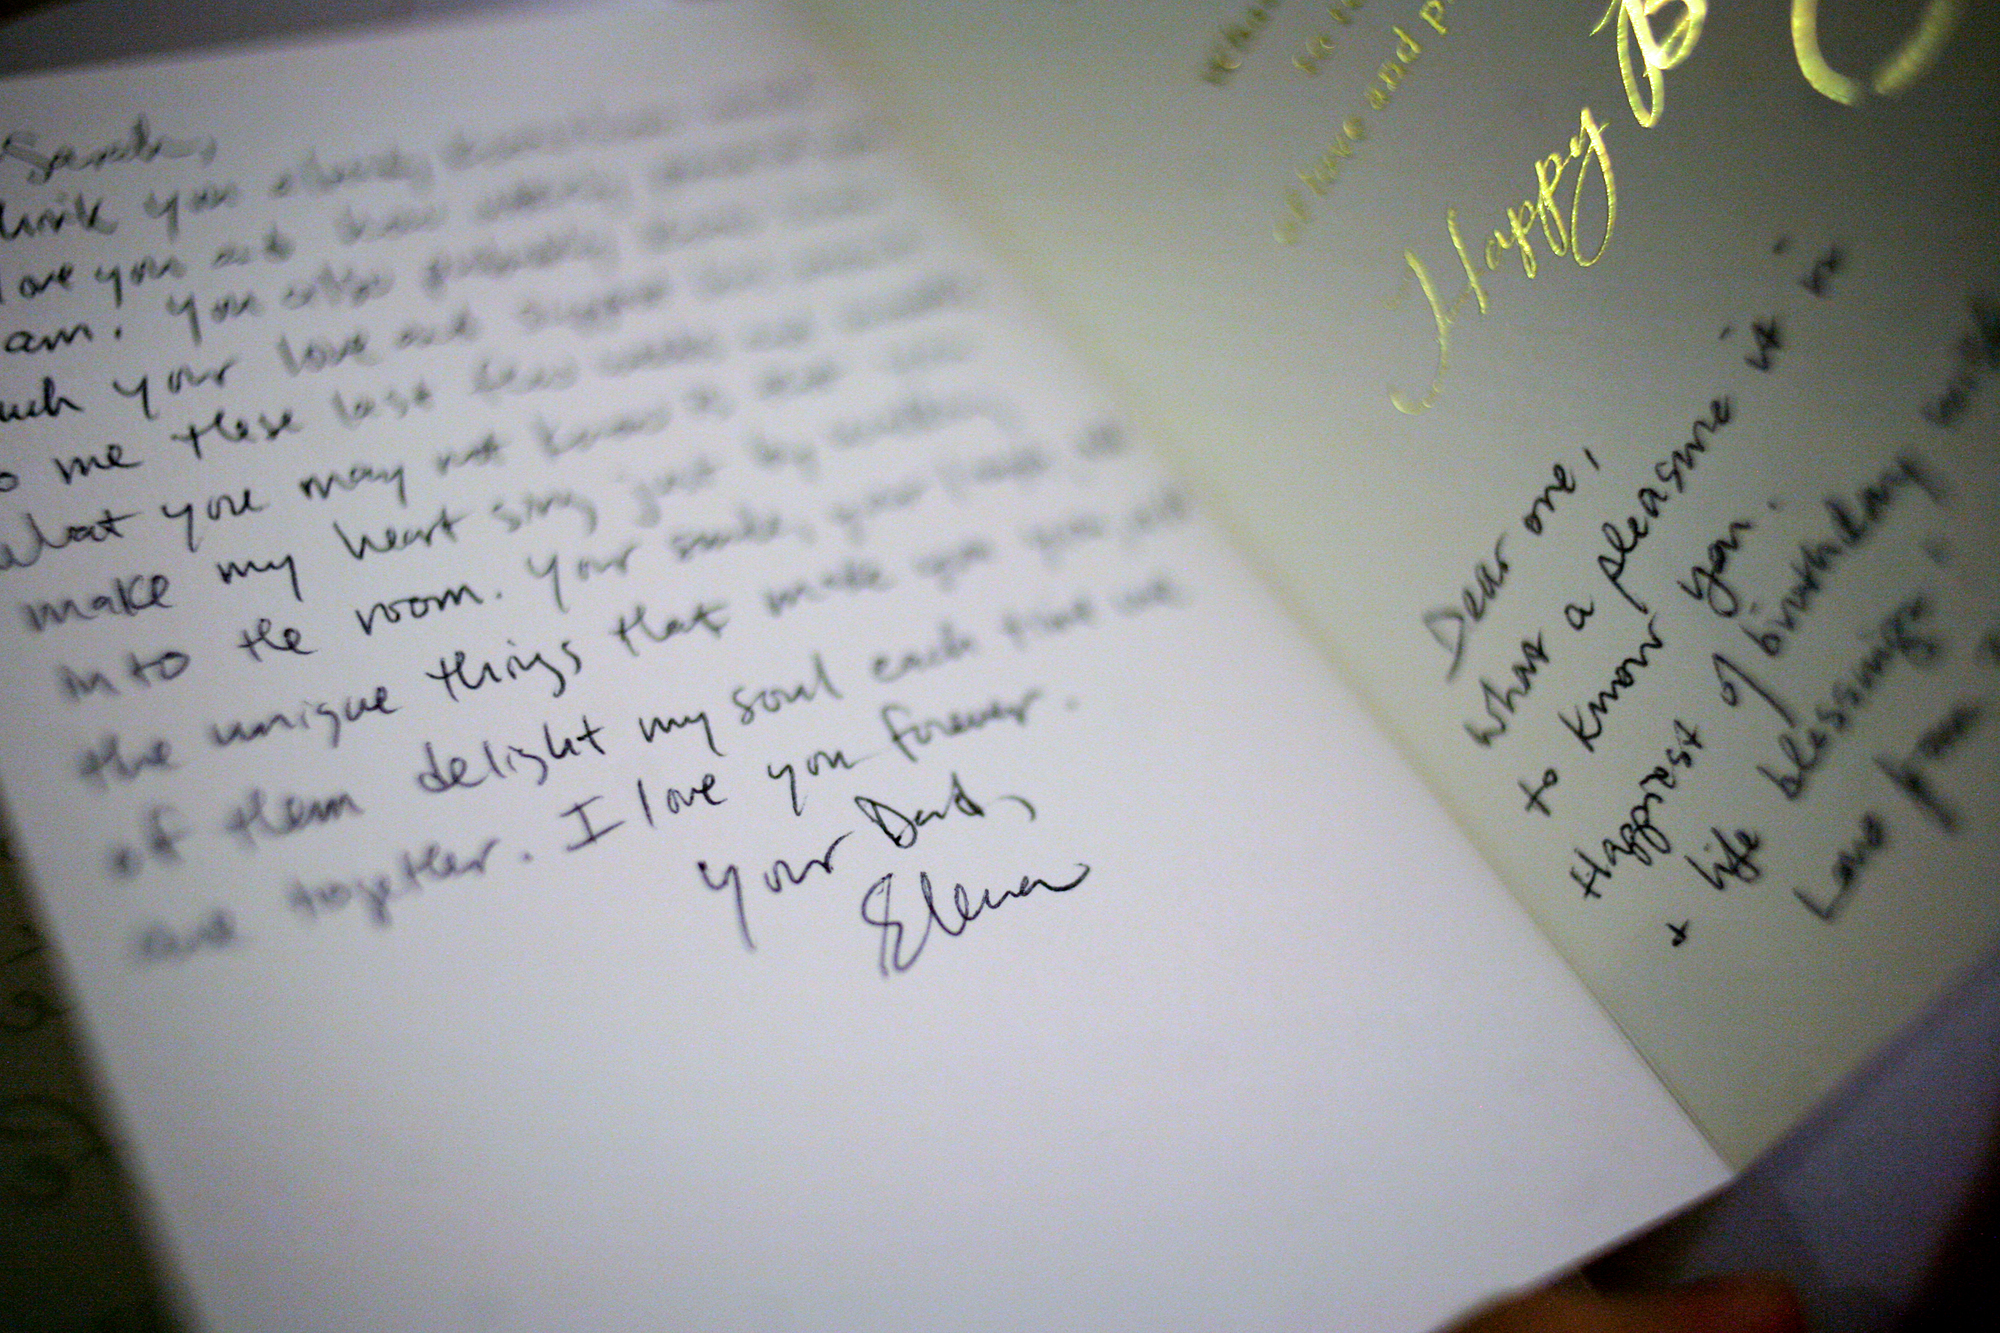 """Elena finishes writing a card to her oldest daughter, Sarah, for her 26th birthday. She sees herself as a woman, but understands she still plays the role of a father in the lives of her children. While in daily life it irks her when others refer to her as """"sir"""" or """"mister,"""" she still welcomes the male terminology of """"dad.""""  """"I am their father, there's nothing I can do to change that,"""" she says. """"There's no reason to change it."""""""